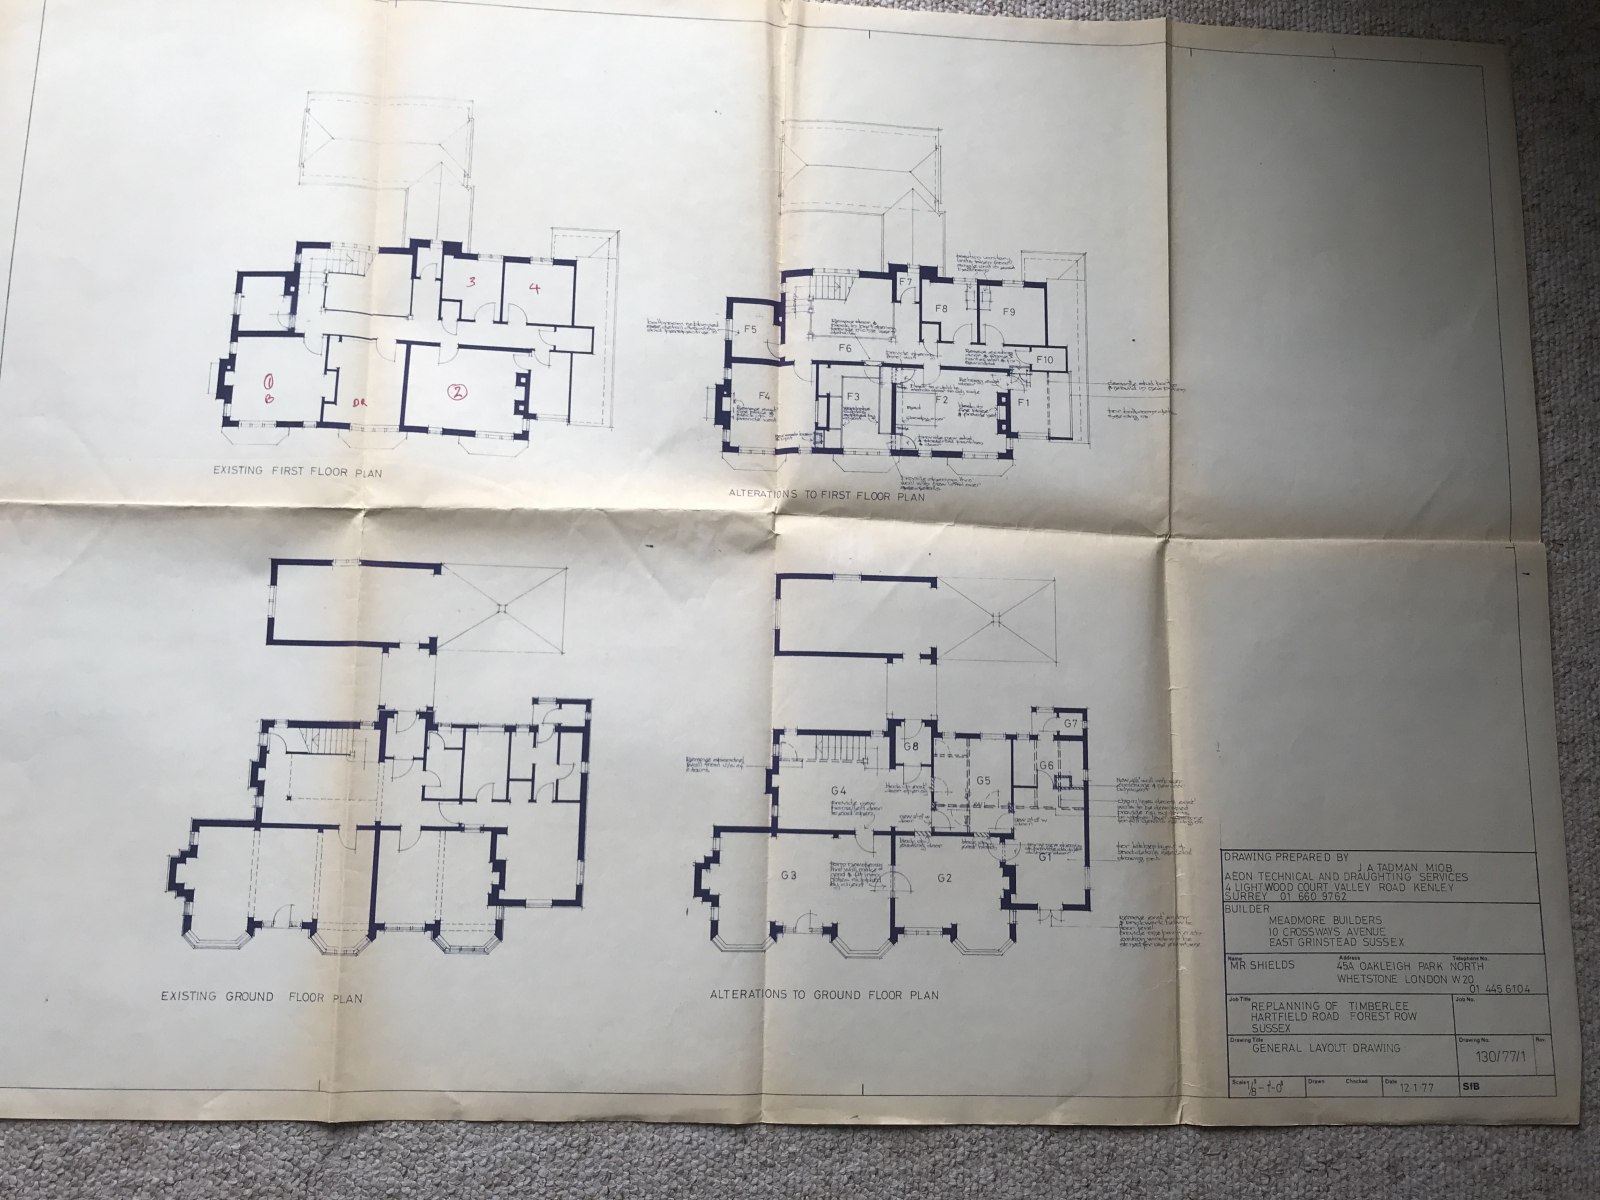 Floor Plan showing alterations carried out in 1980's